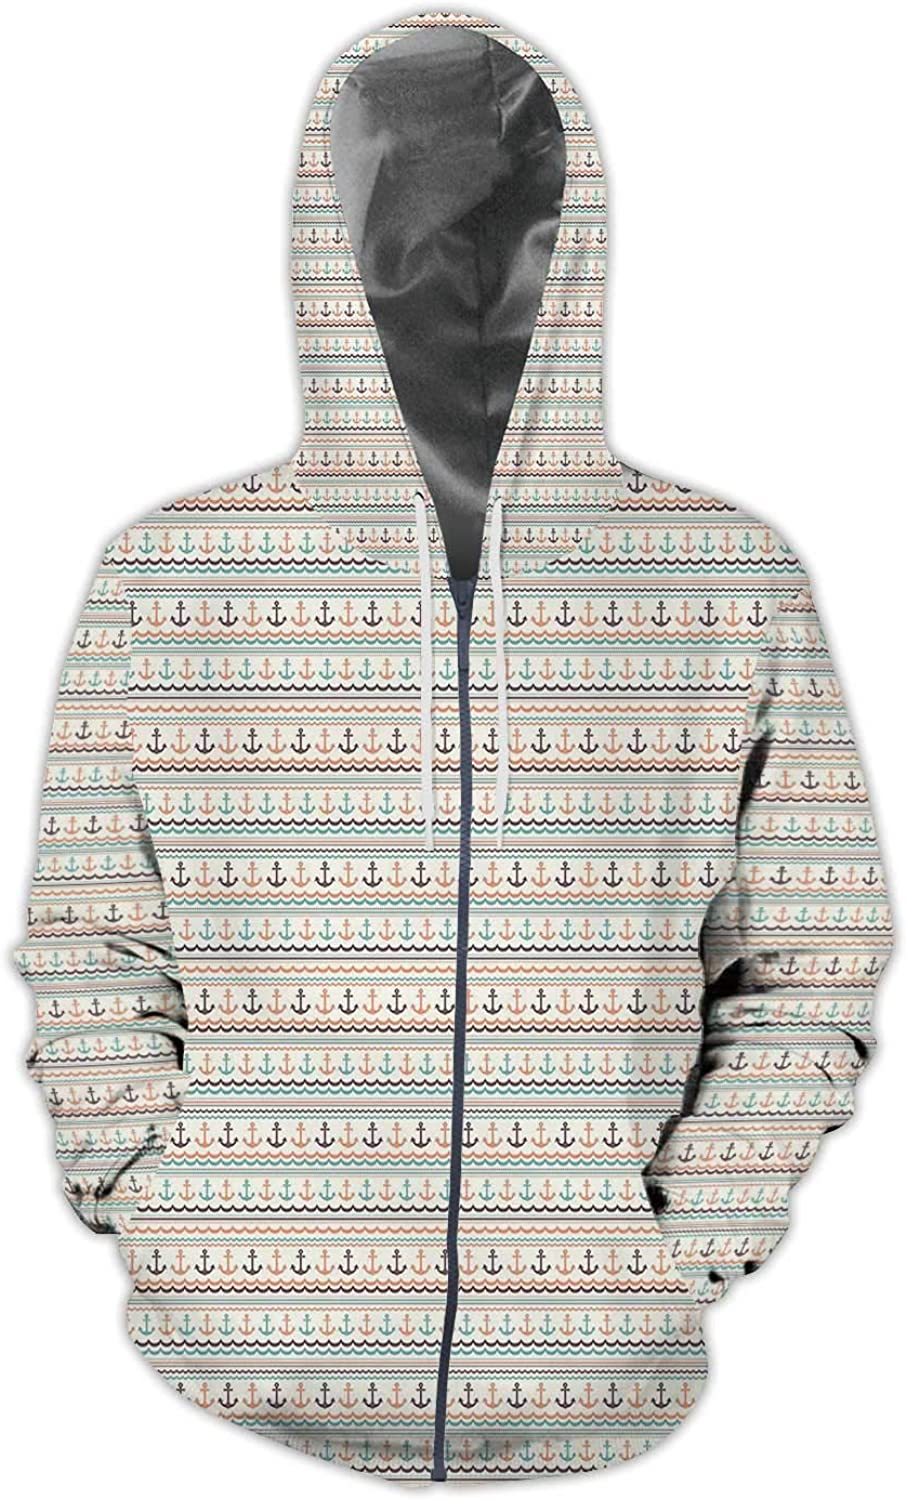 Illustration 1950-1959,Mens Print 3D Fashion Hoodies Sweatshirts Child S C COABALLA Group of Kids from The Fifties